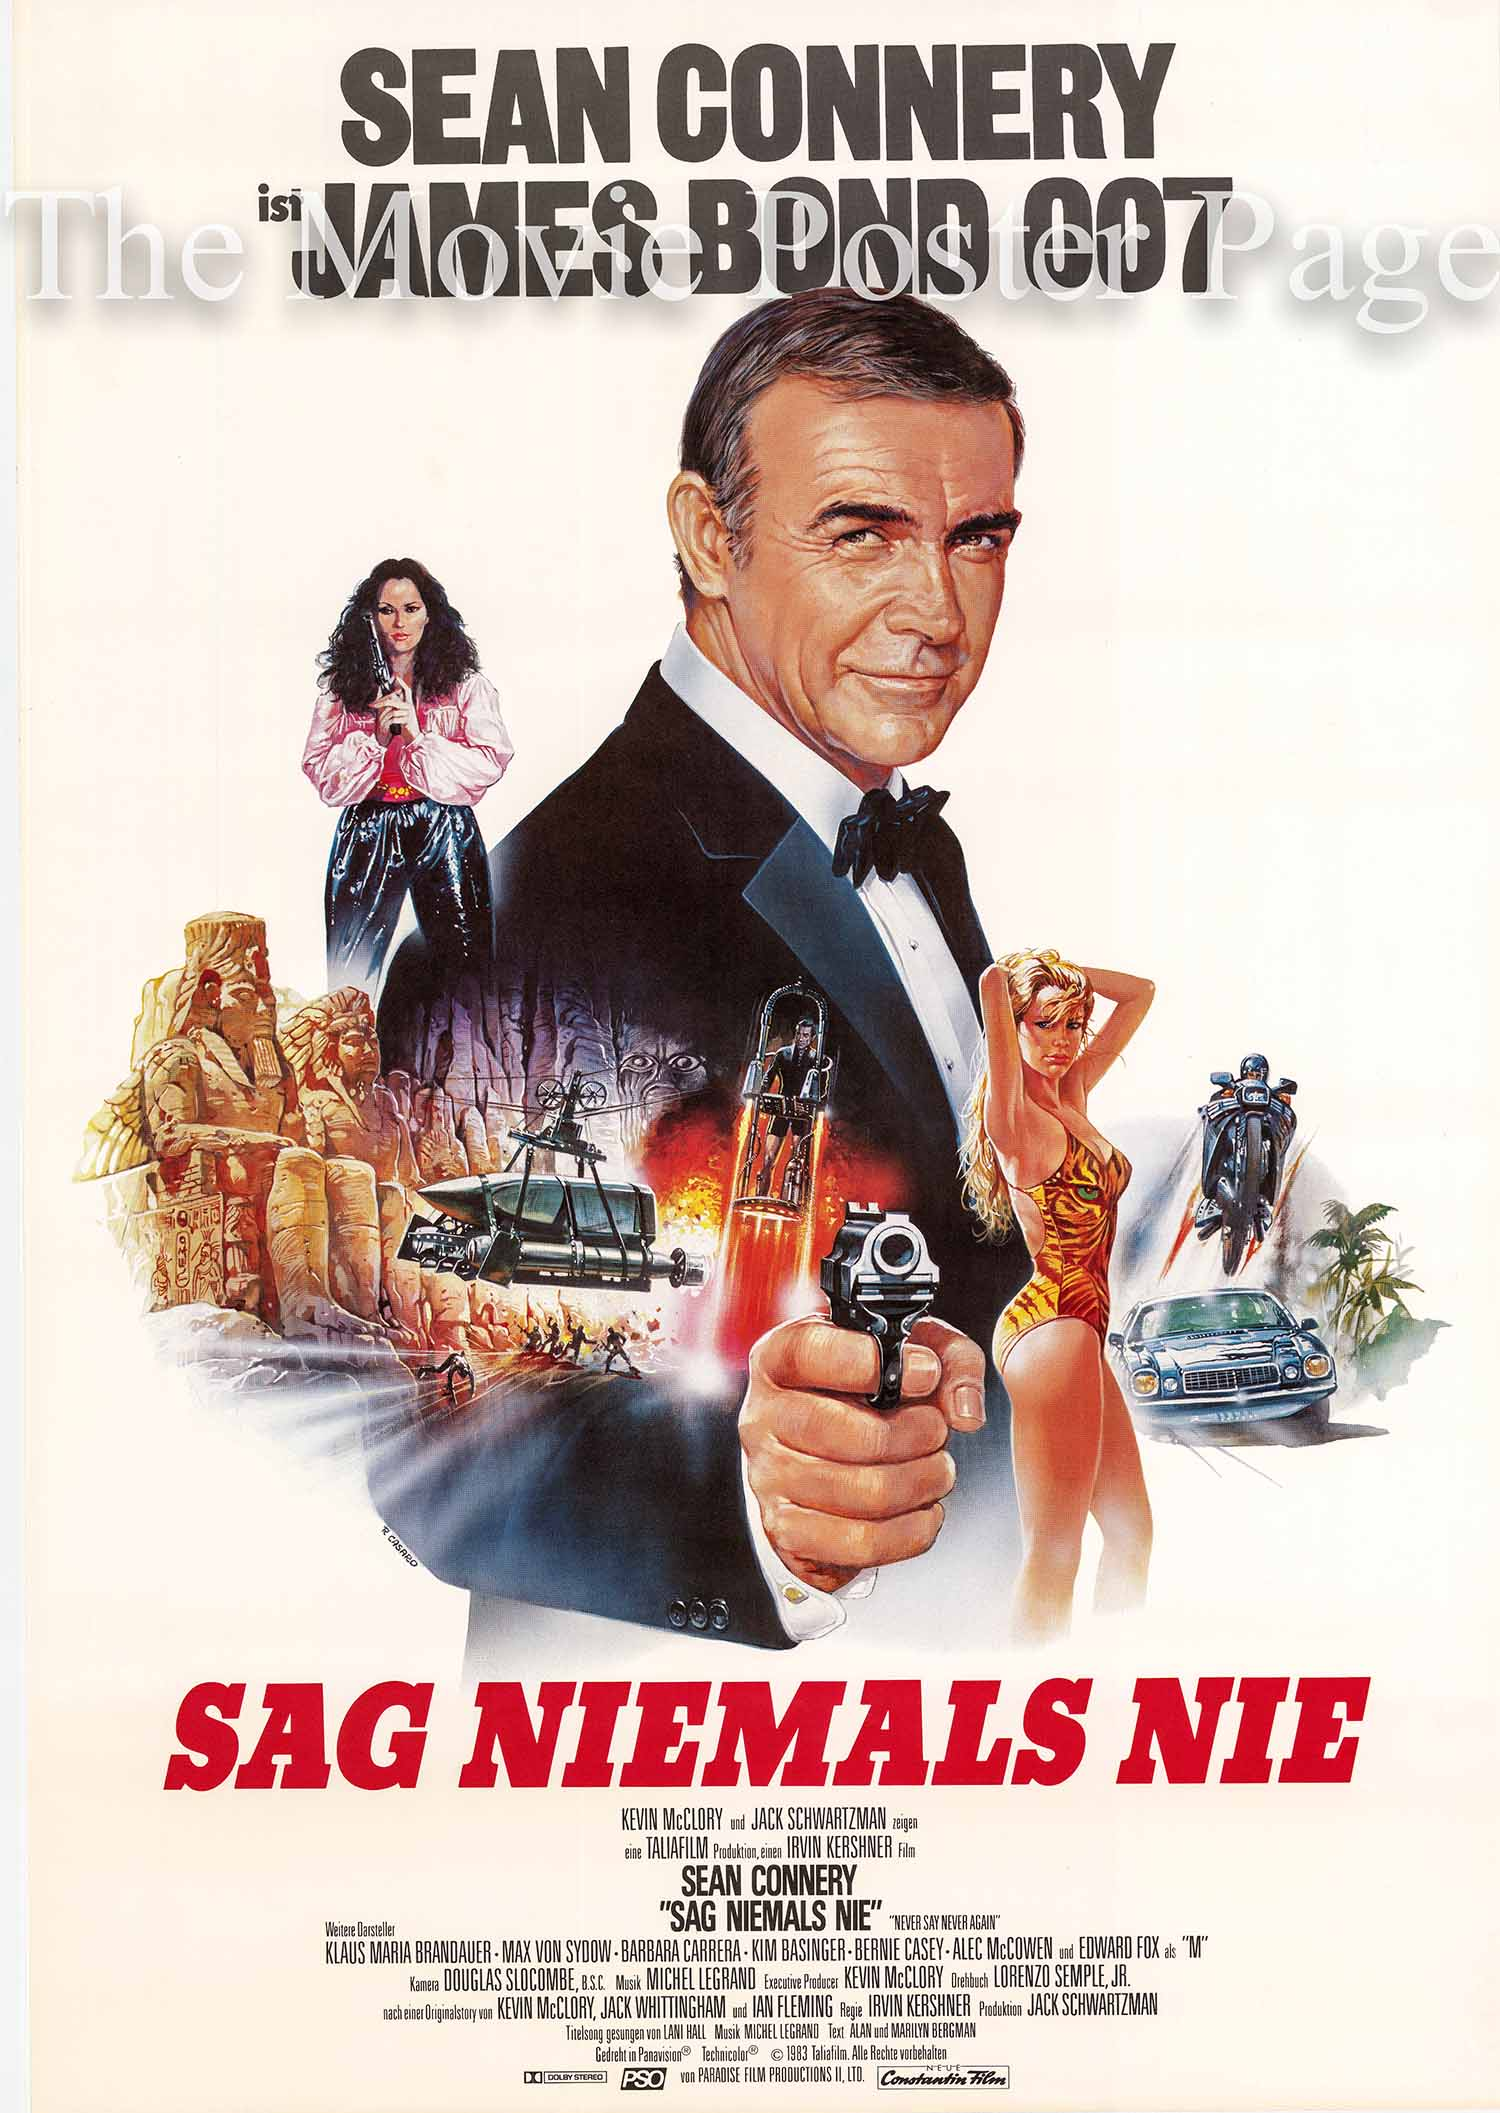 Pictured is a German two-sheet promotional poster for the 1983 Irvin Kershner film Never Say Never Again starring Sean Connery as James Bond.